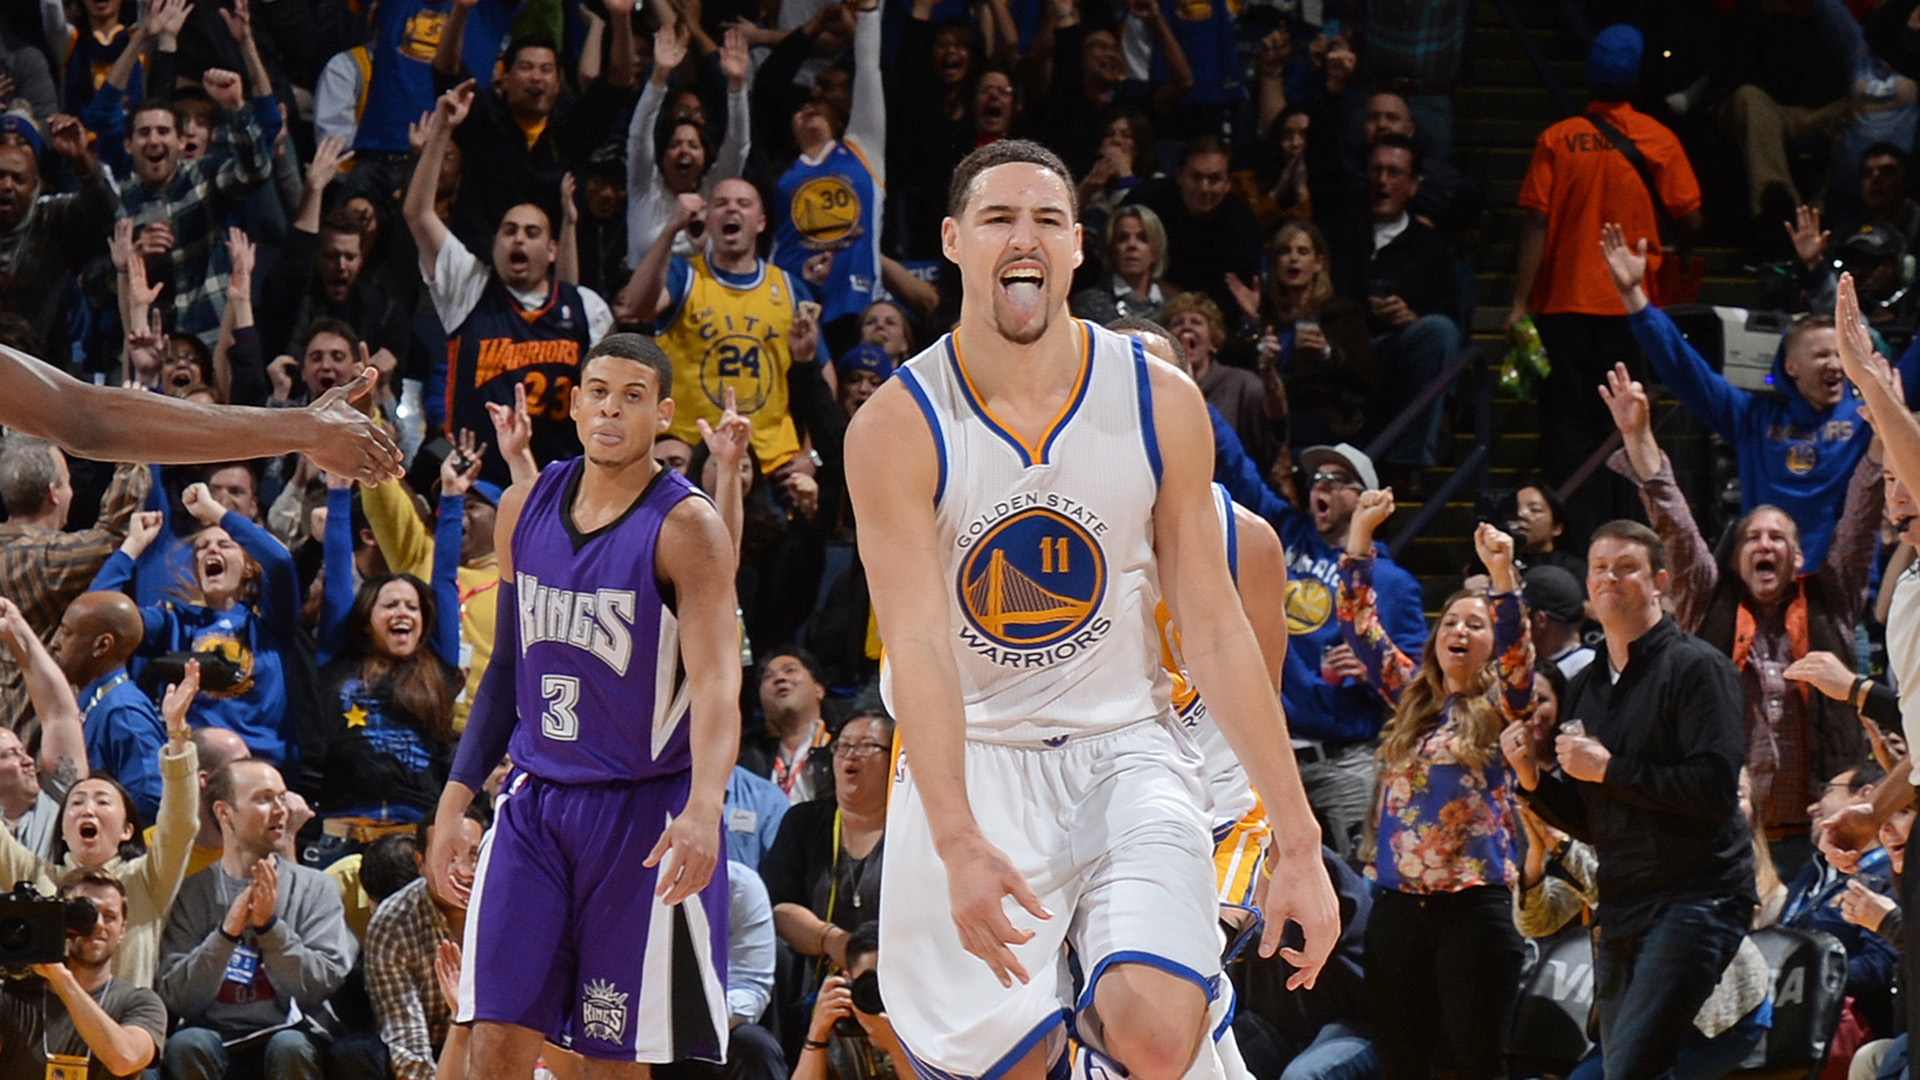 On This Date: Thompson Erupts For 37 In 3rd Quarter